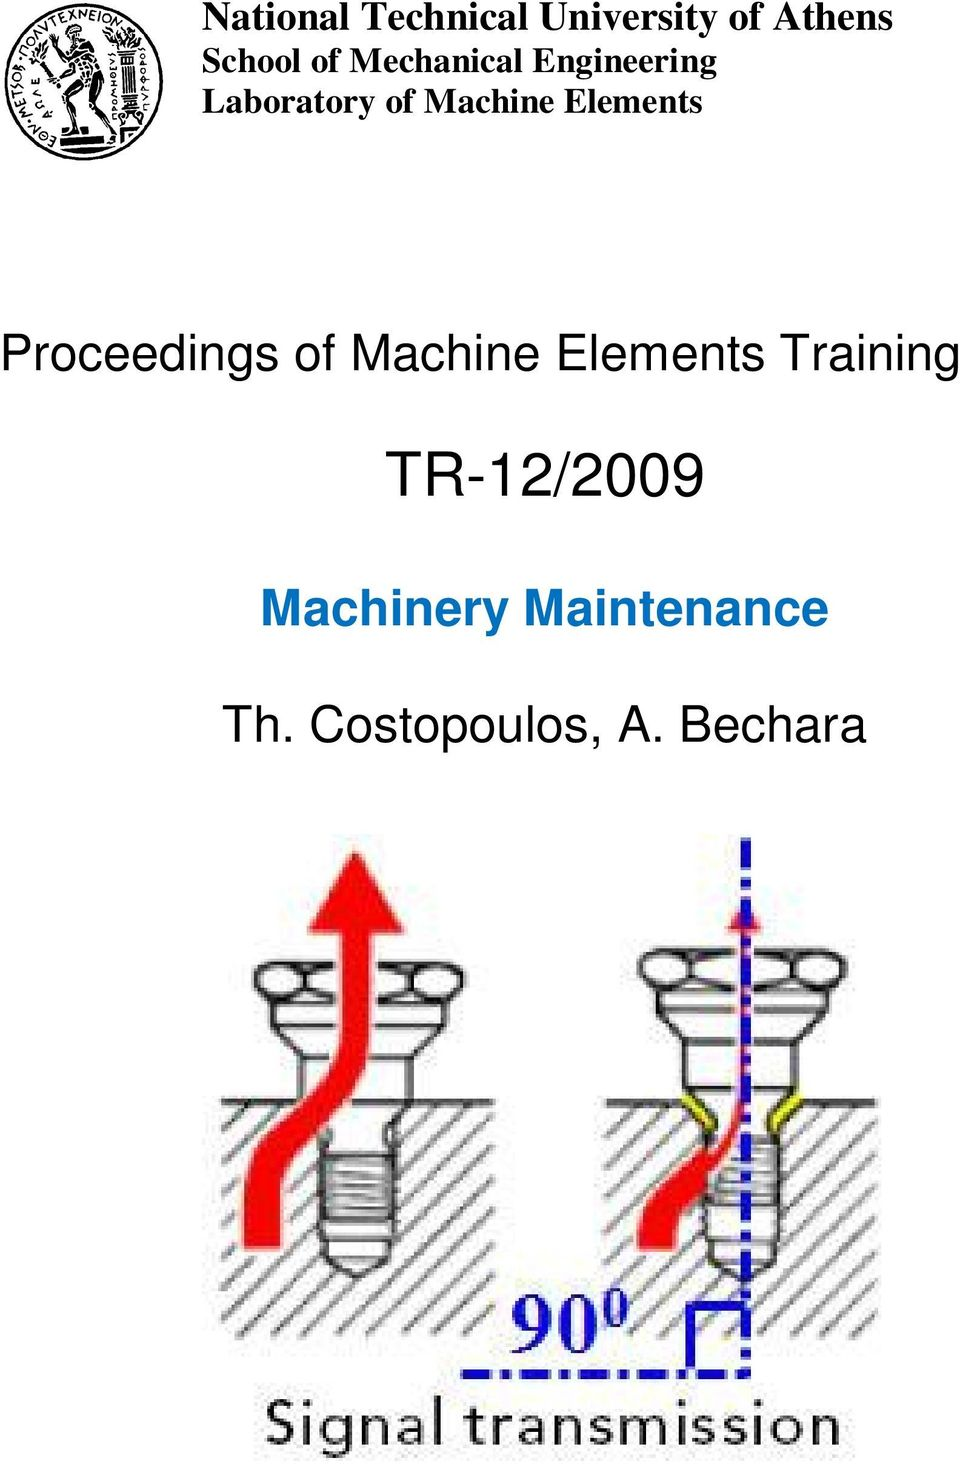 Elements Proceedings of Machine Elements Training